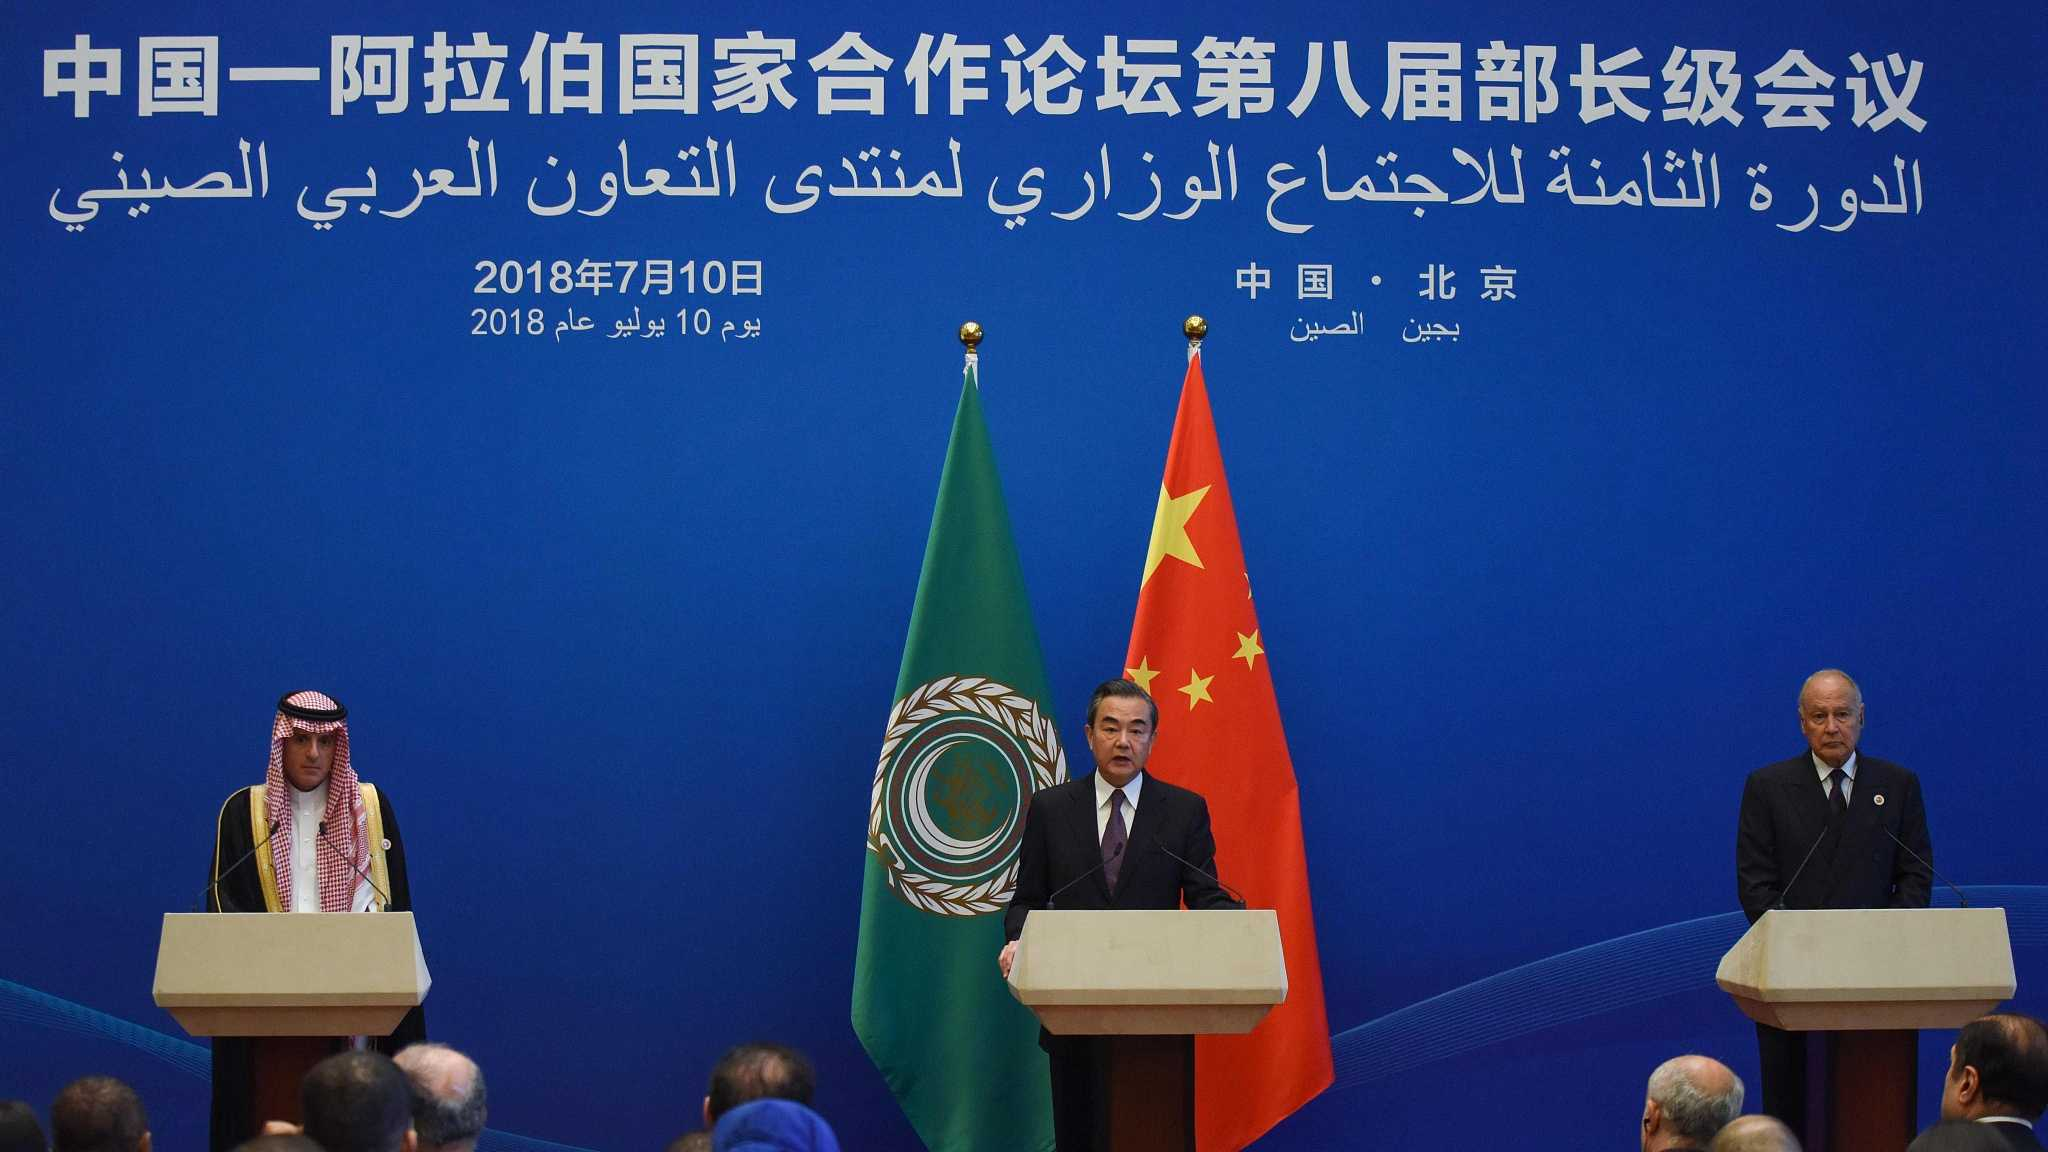 A new milestone in China's relations with the Arab world